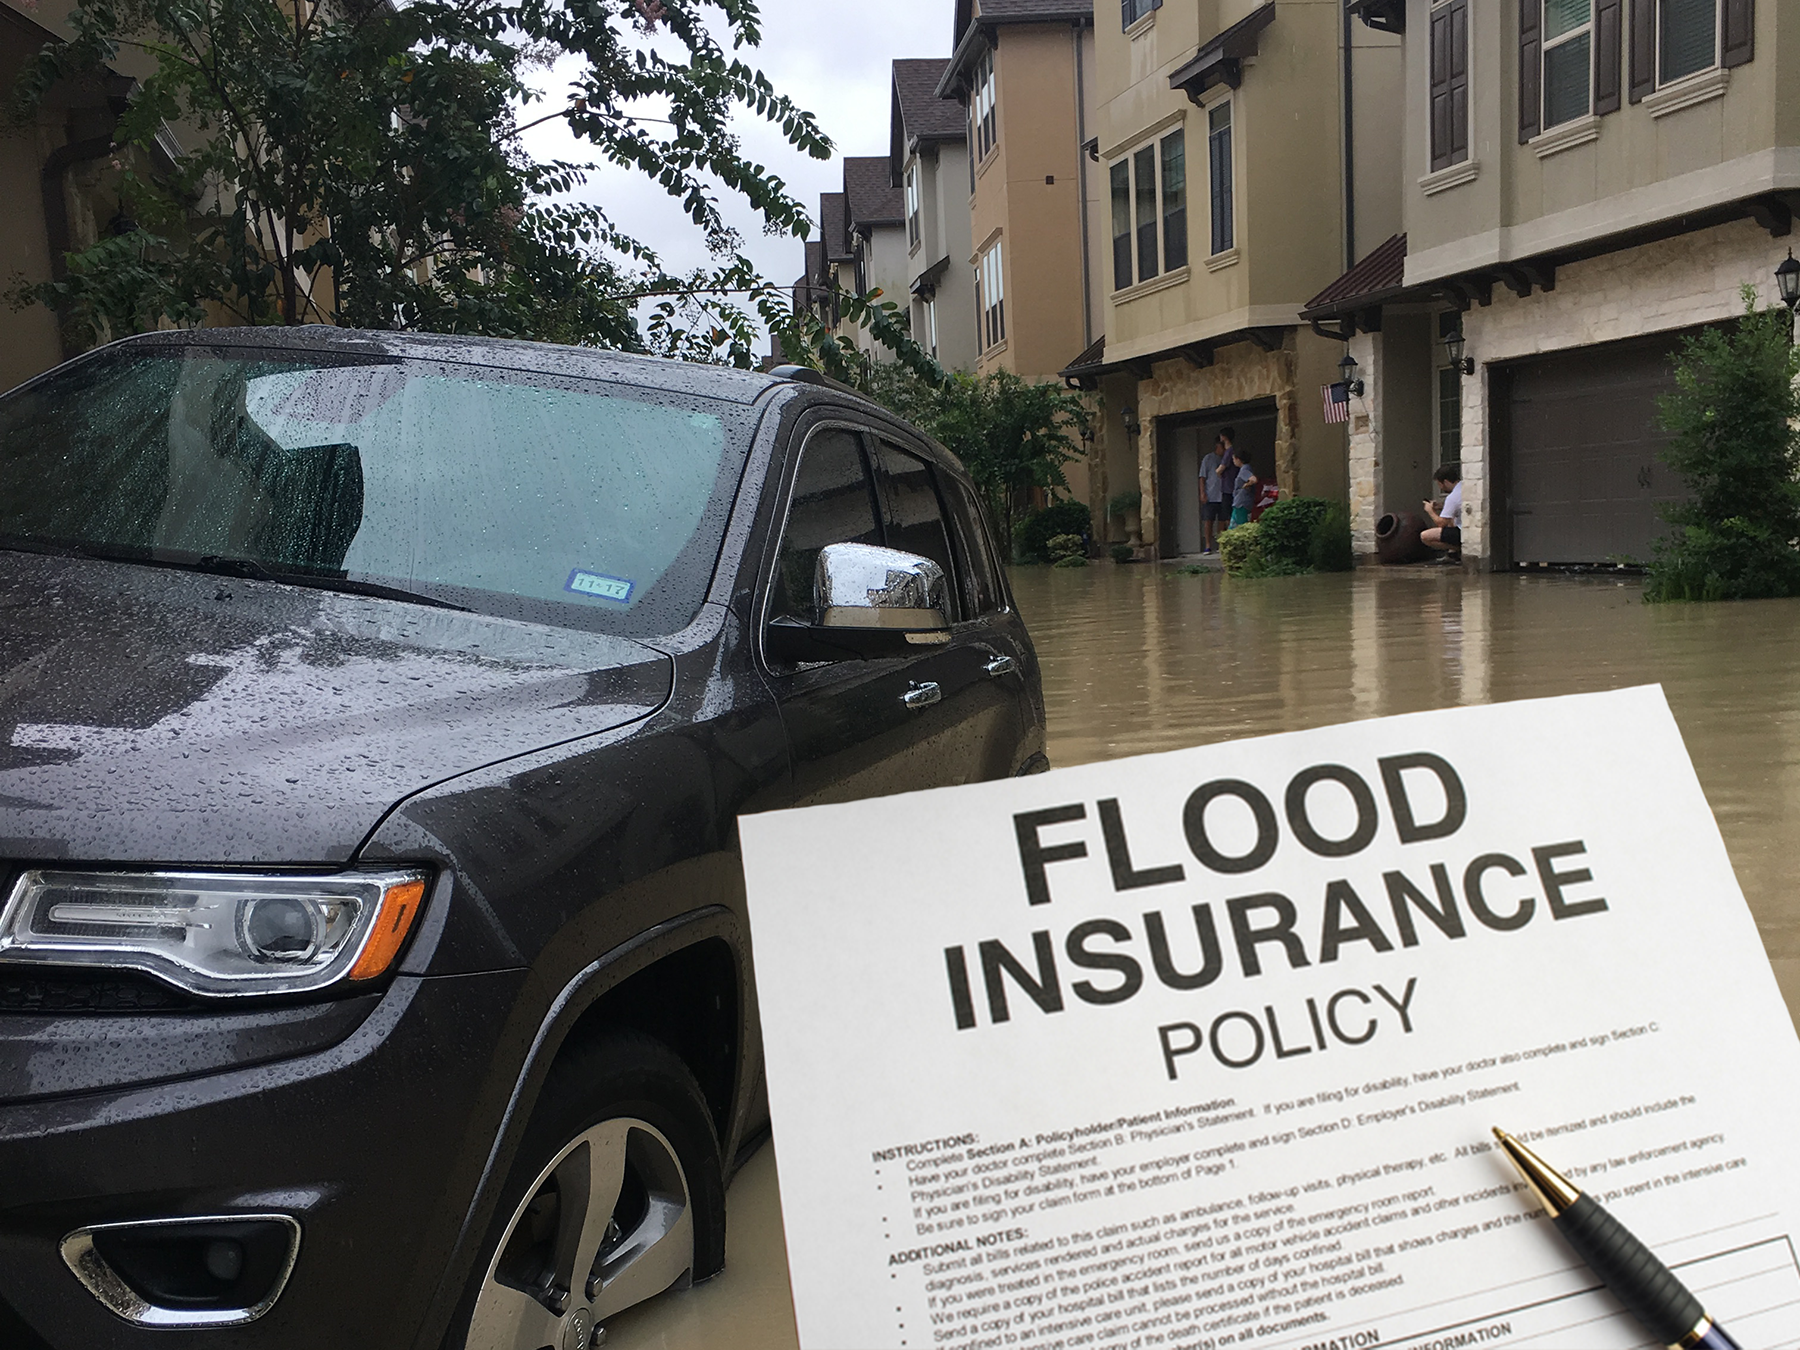 FloodInsurancePolicy